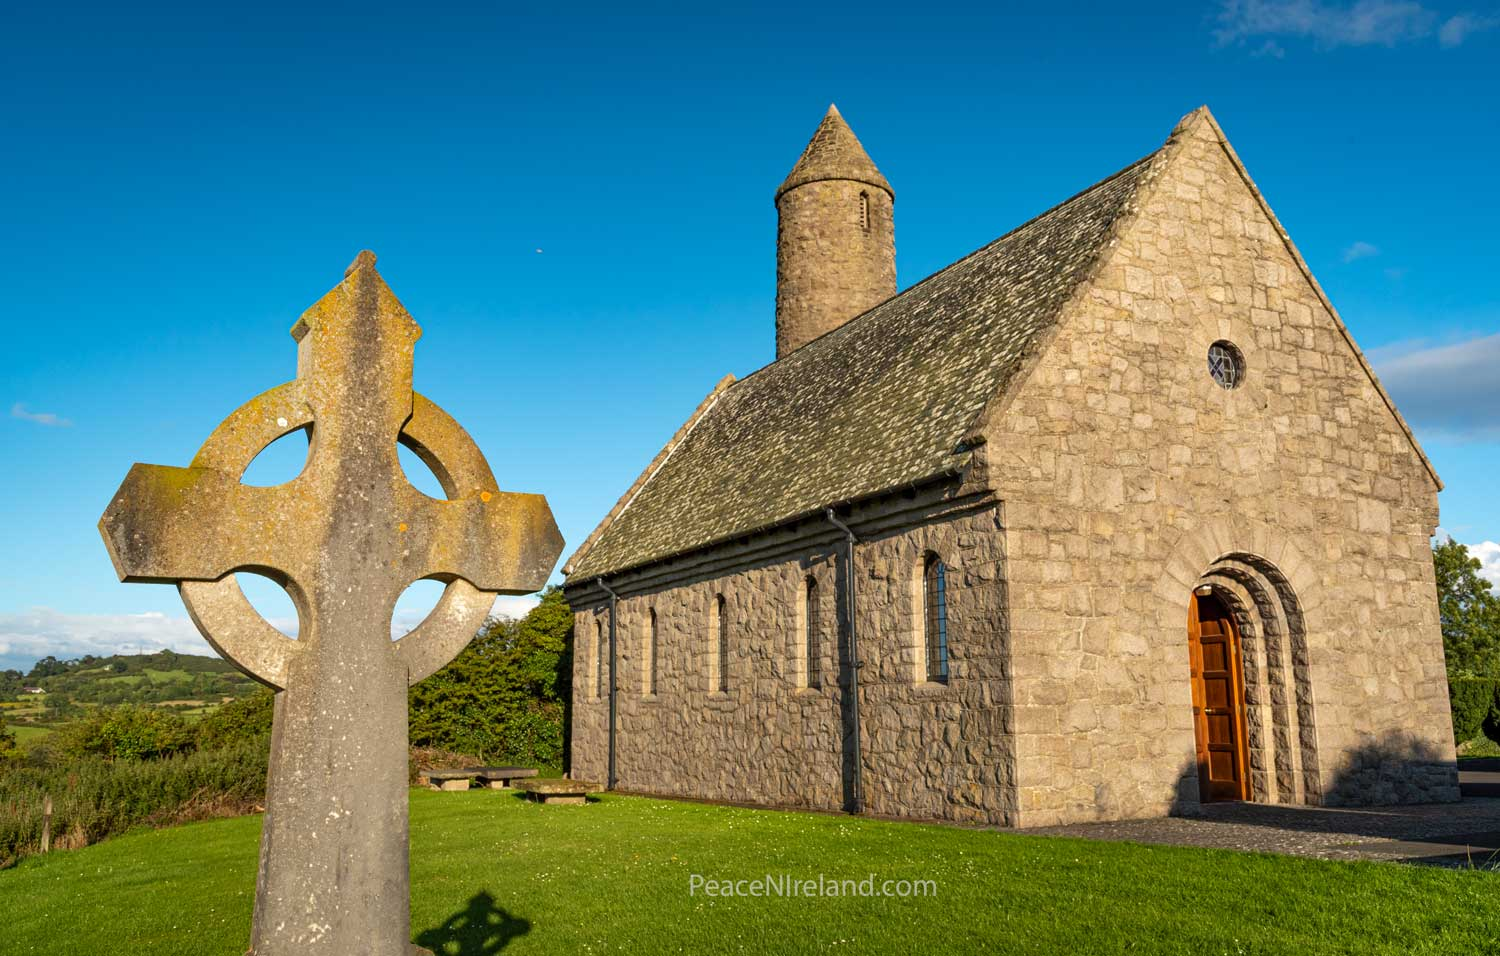 The St Patrick Memorial Church (Church of Ireland) at Saul, County Down. On this site Patrick built the first Christian Church in Ireland in 432AD.